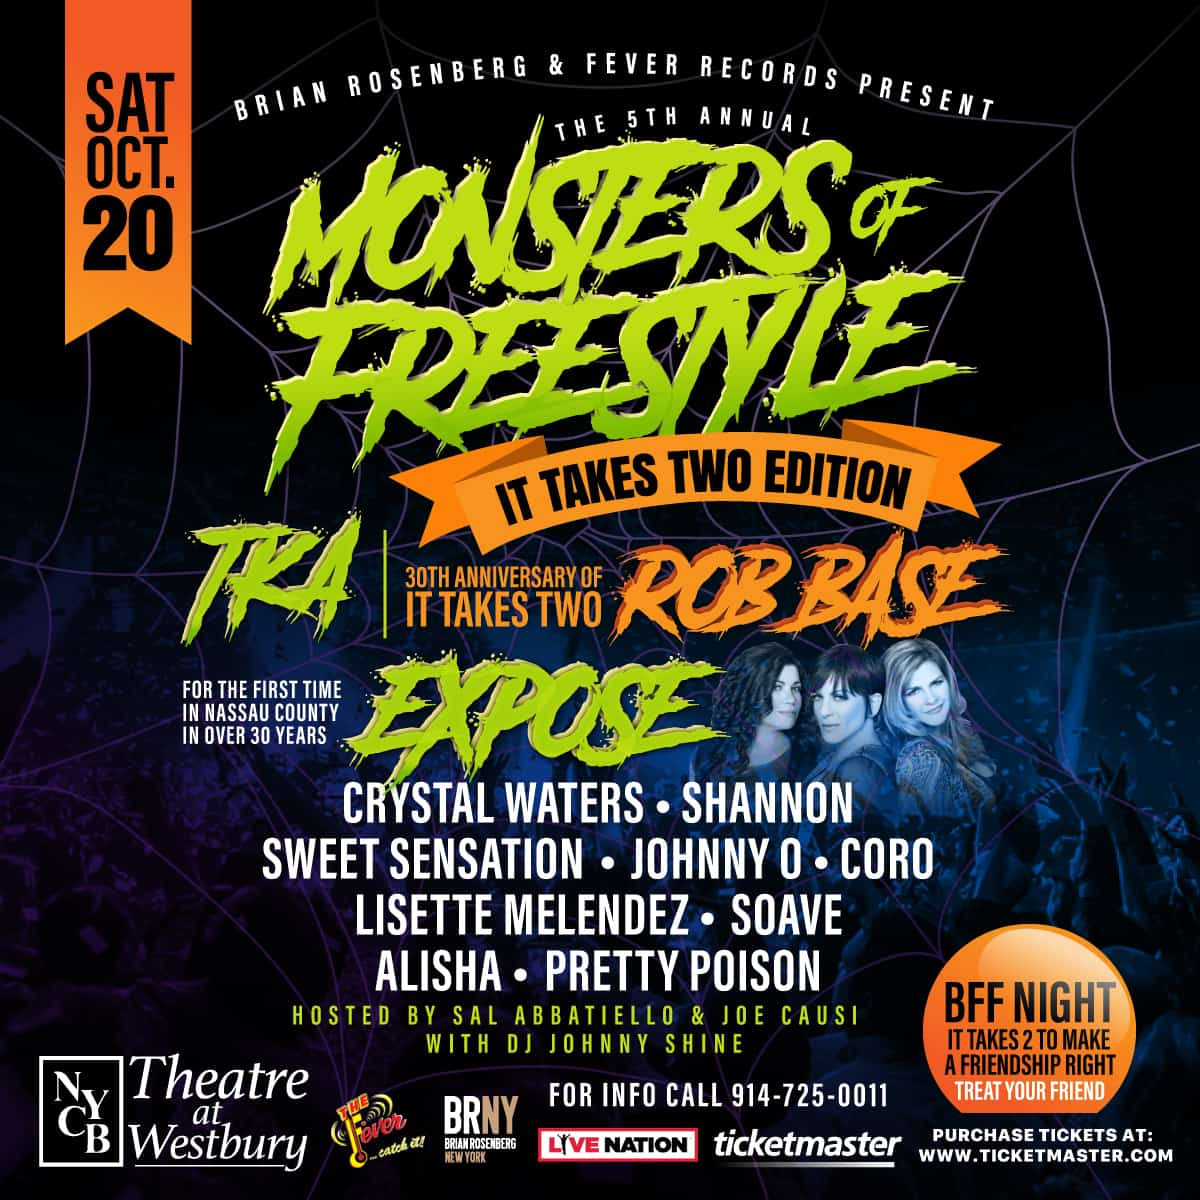 Monsters of Freestyle